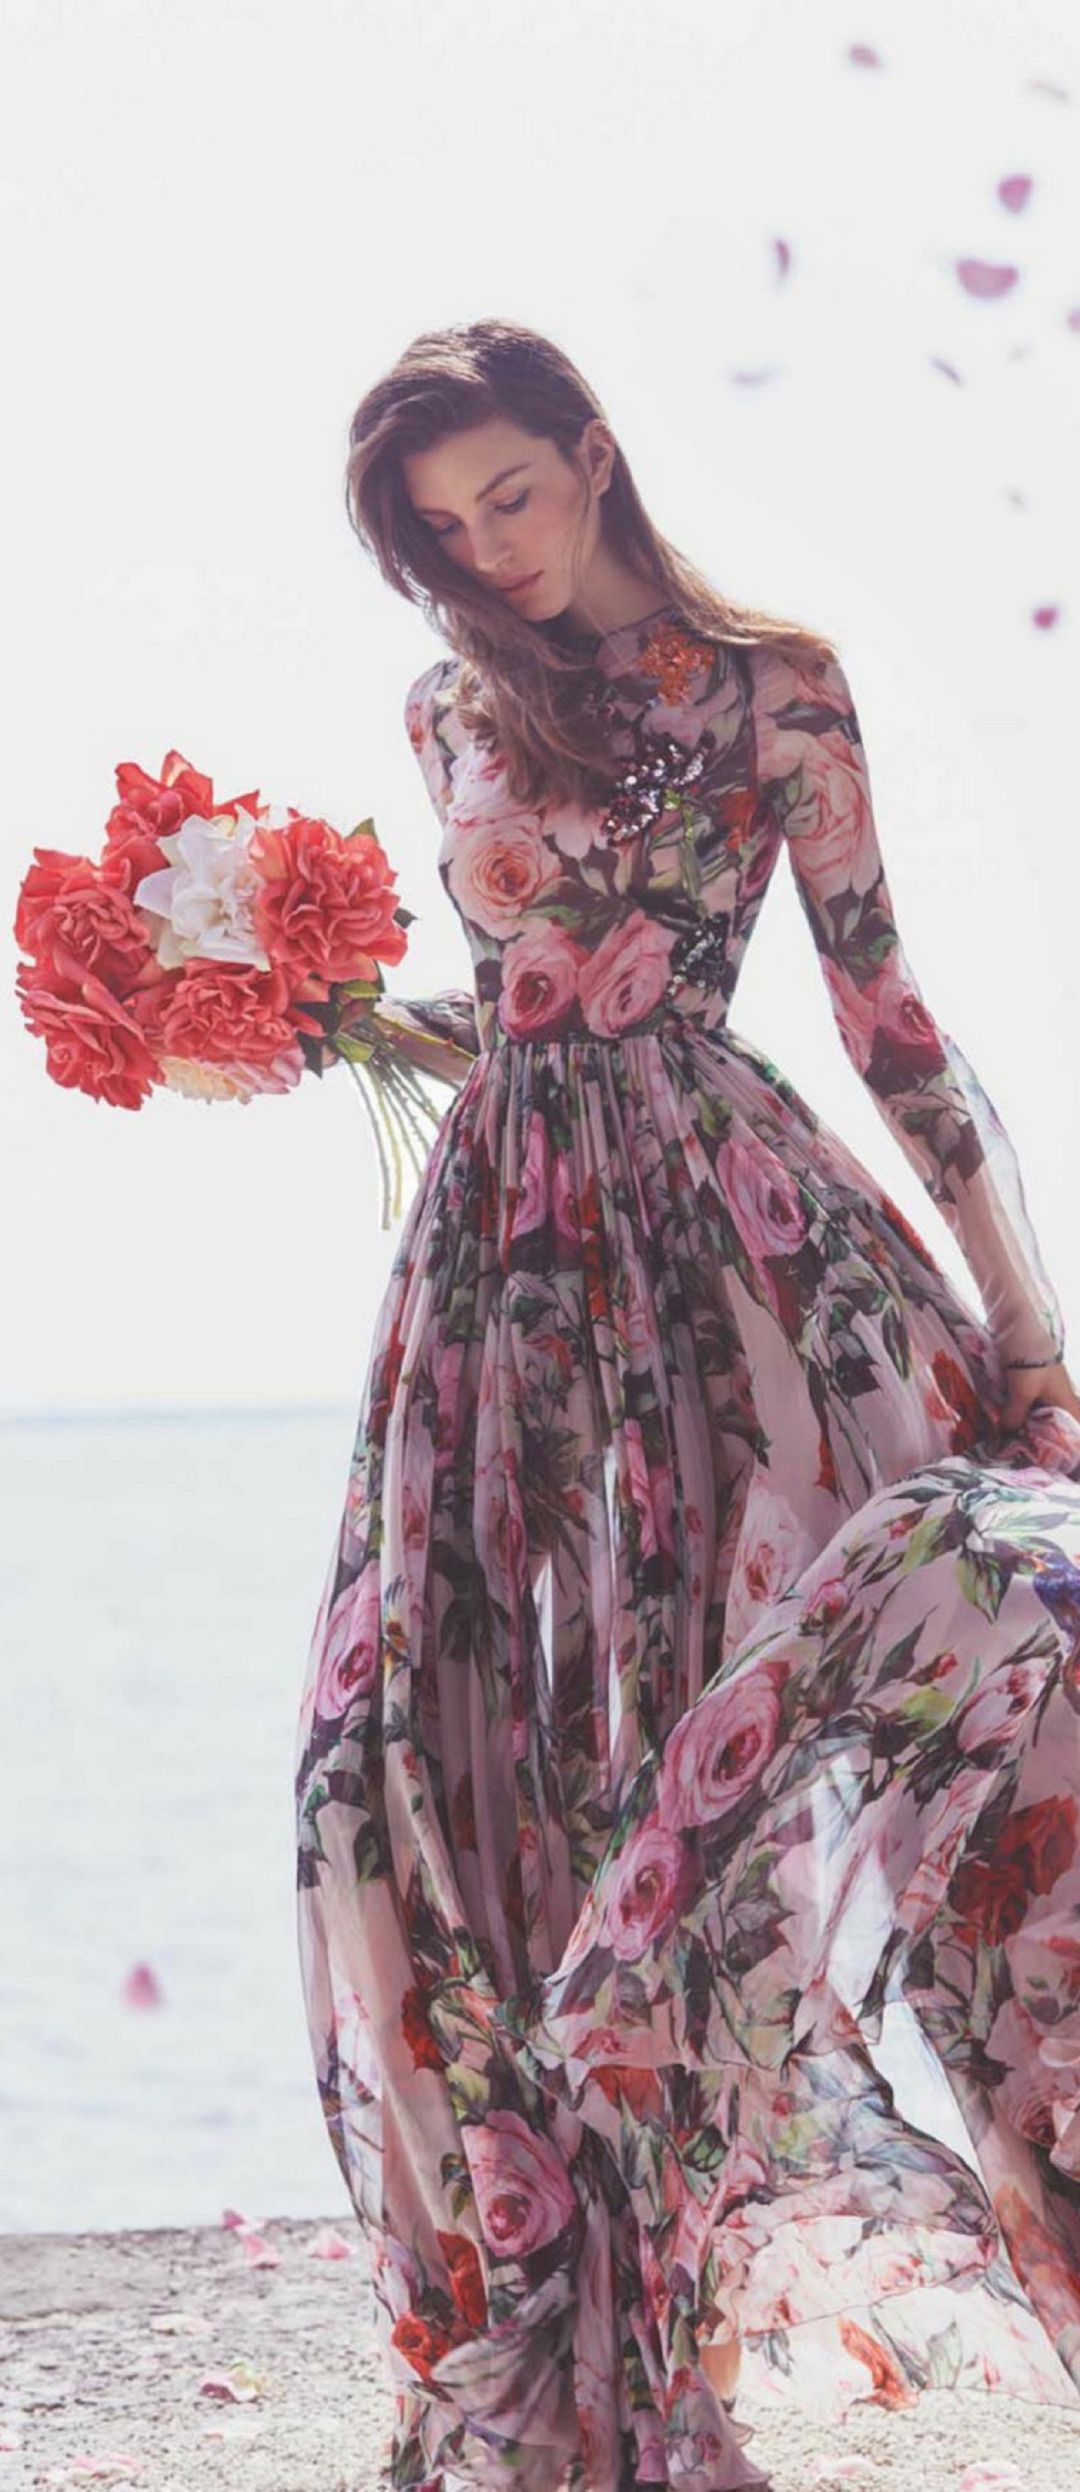 Cozy 45 Outrageously Pretty Women's Floral Dresses Spring Summer Outfits https://www.tukuoke.com/45-outrageously-pretty-womens-floral-dresses-spring-summer-outfits-2194